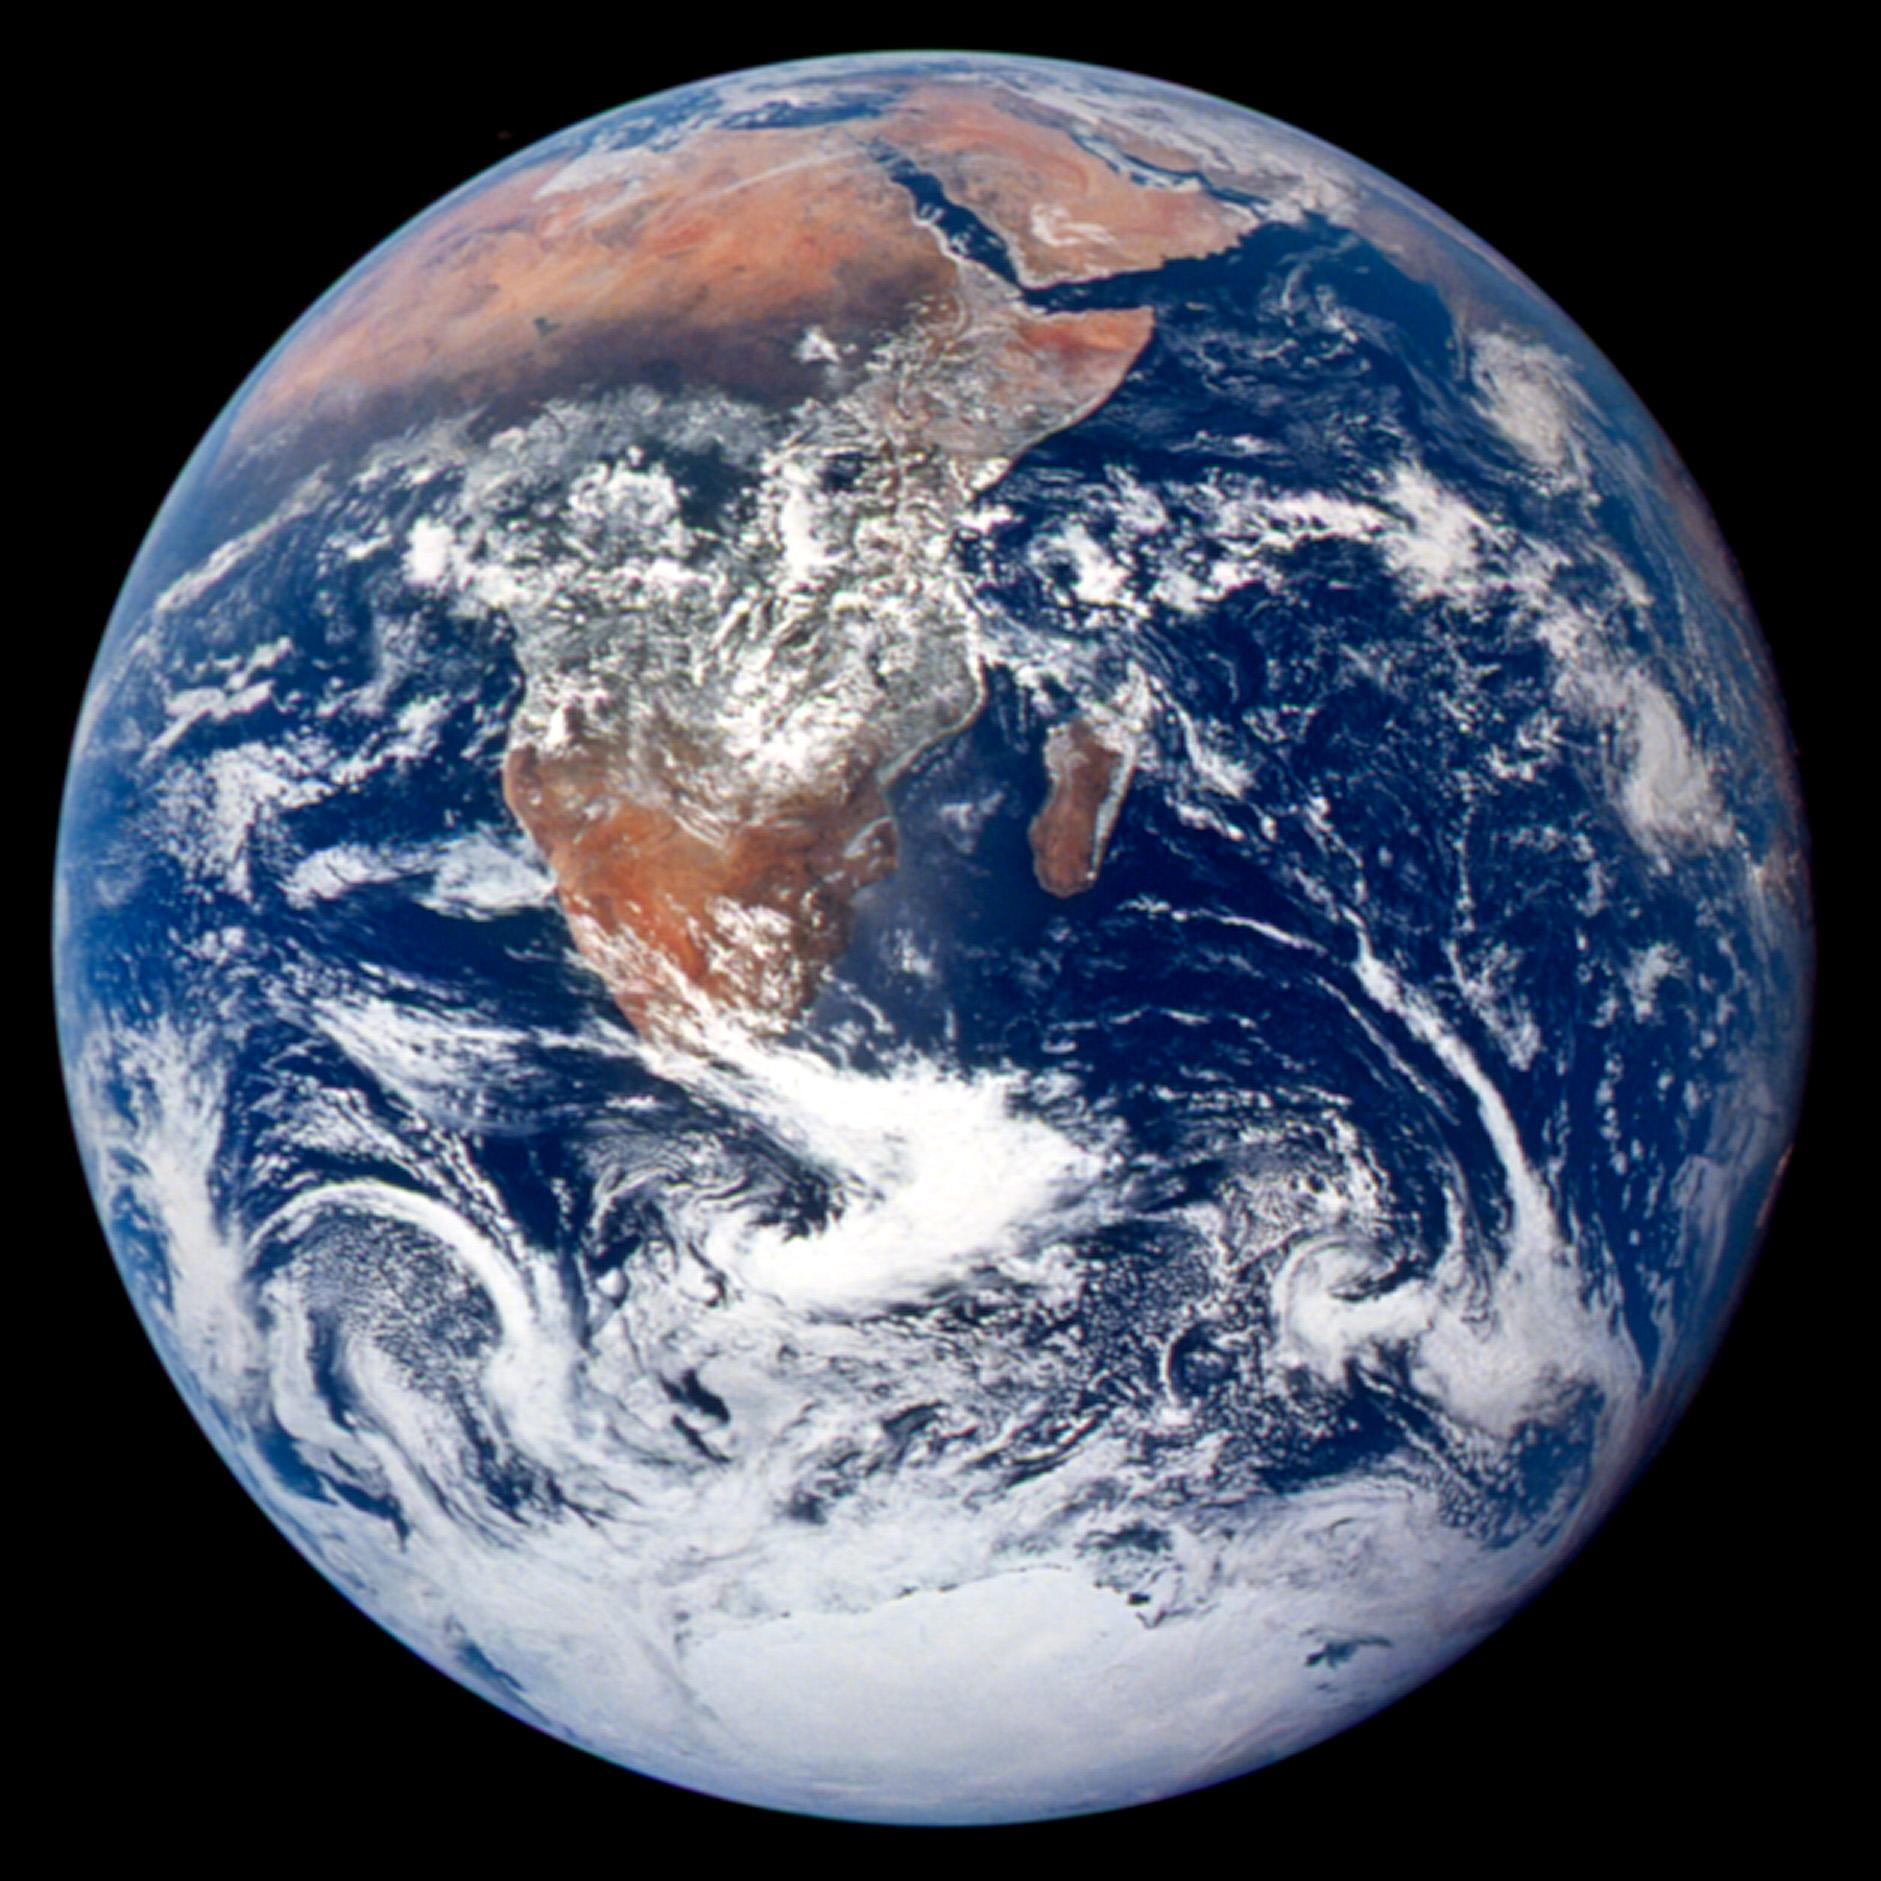 The first picture of the entire planet Earth was captured on the Apollo 17 mission in 1972. Photo credit: NASA